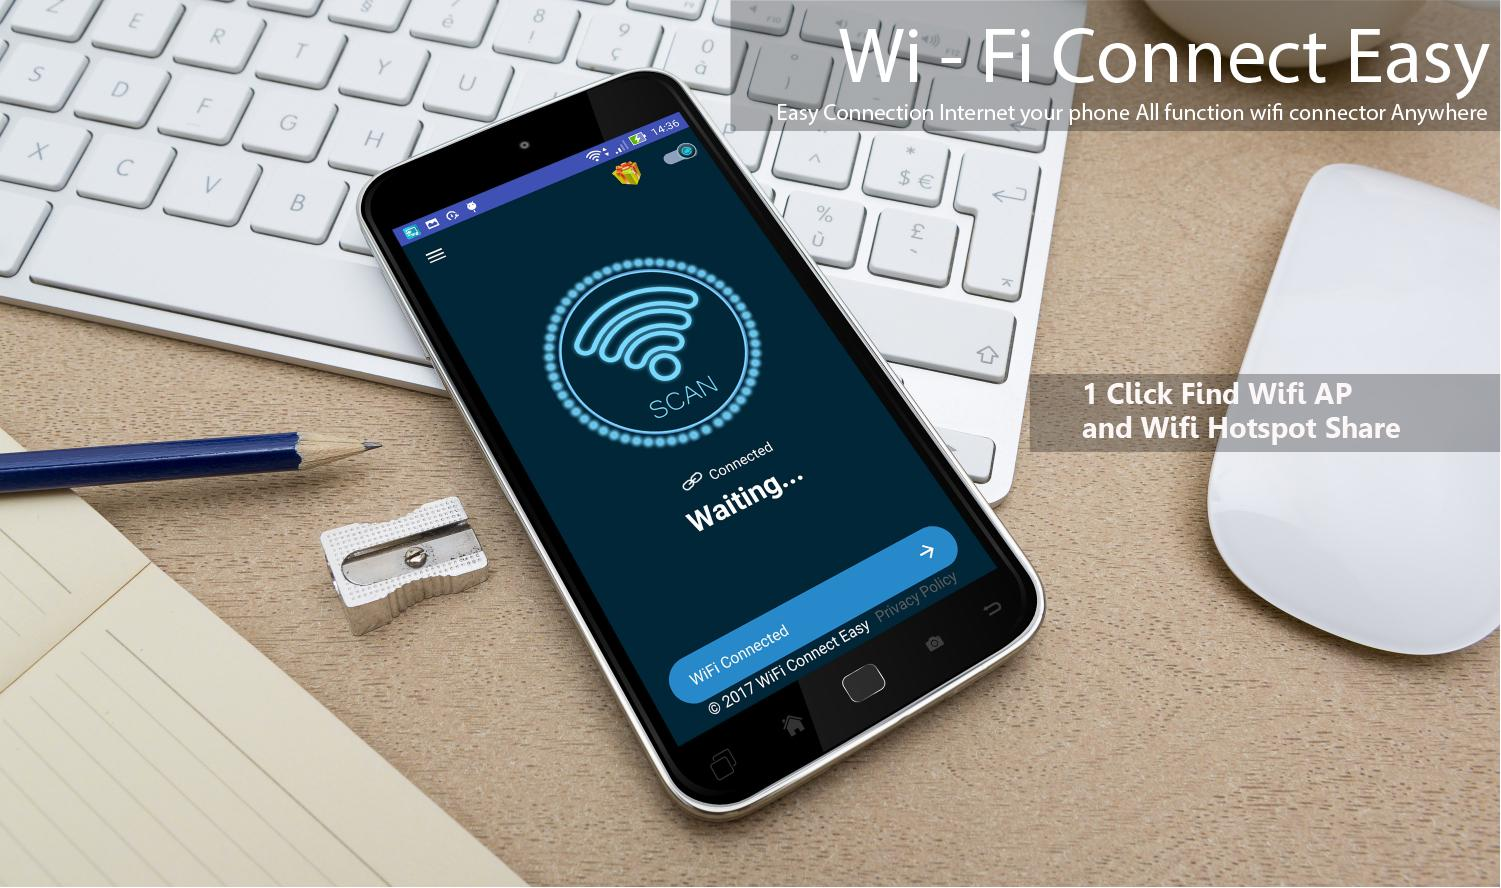 how to connect windows 7 to internet with wifi